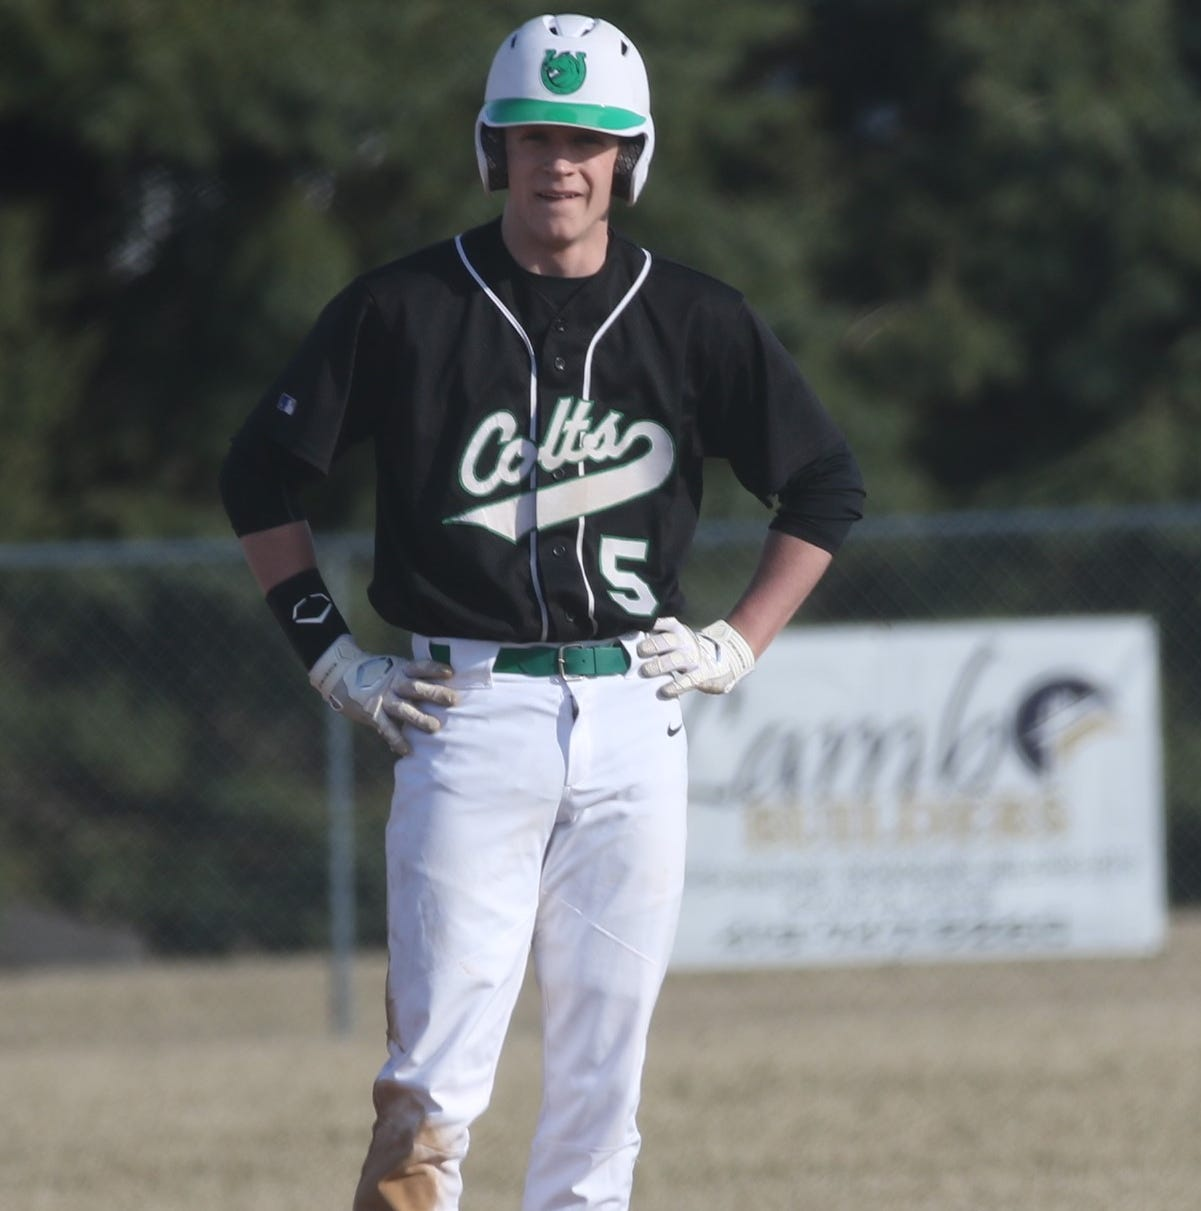 Richland County Baseball Power Poll: Clear Fork Colts hold top spot by wide margin